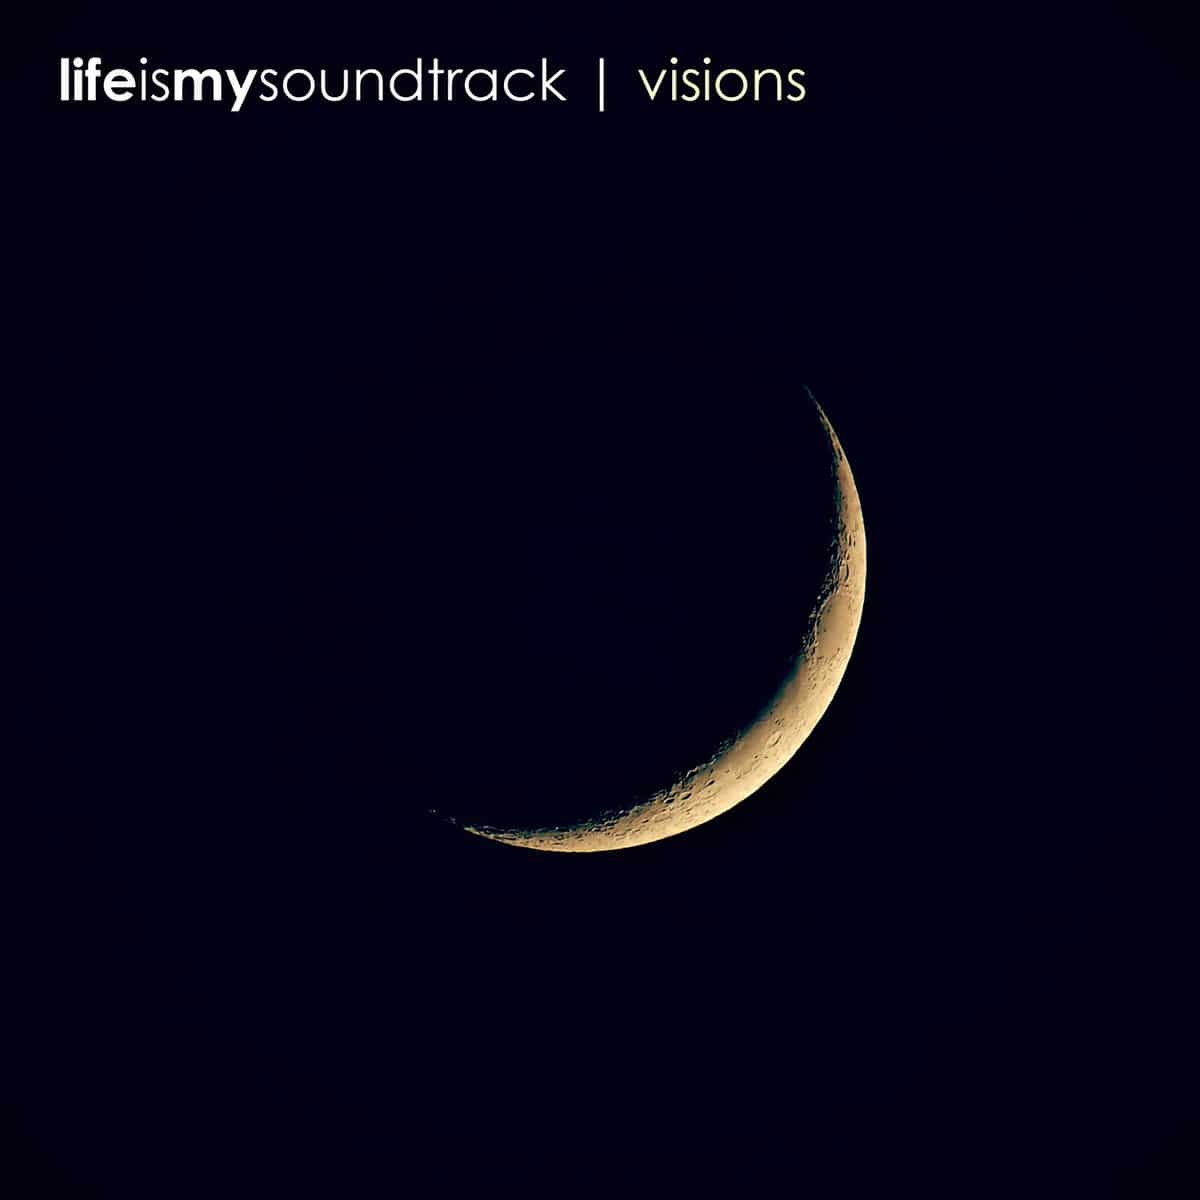 The album Visions by Life Is My Soundtrack - Experience visions of sounds and dreams